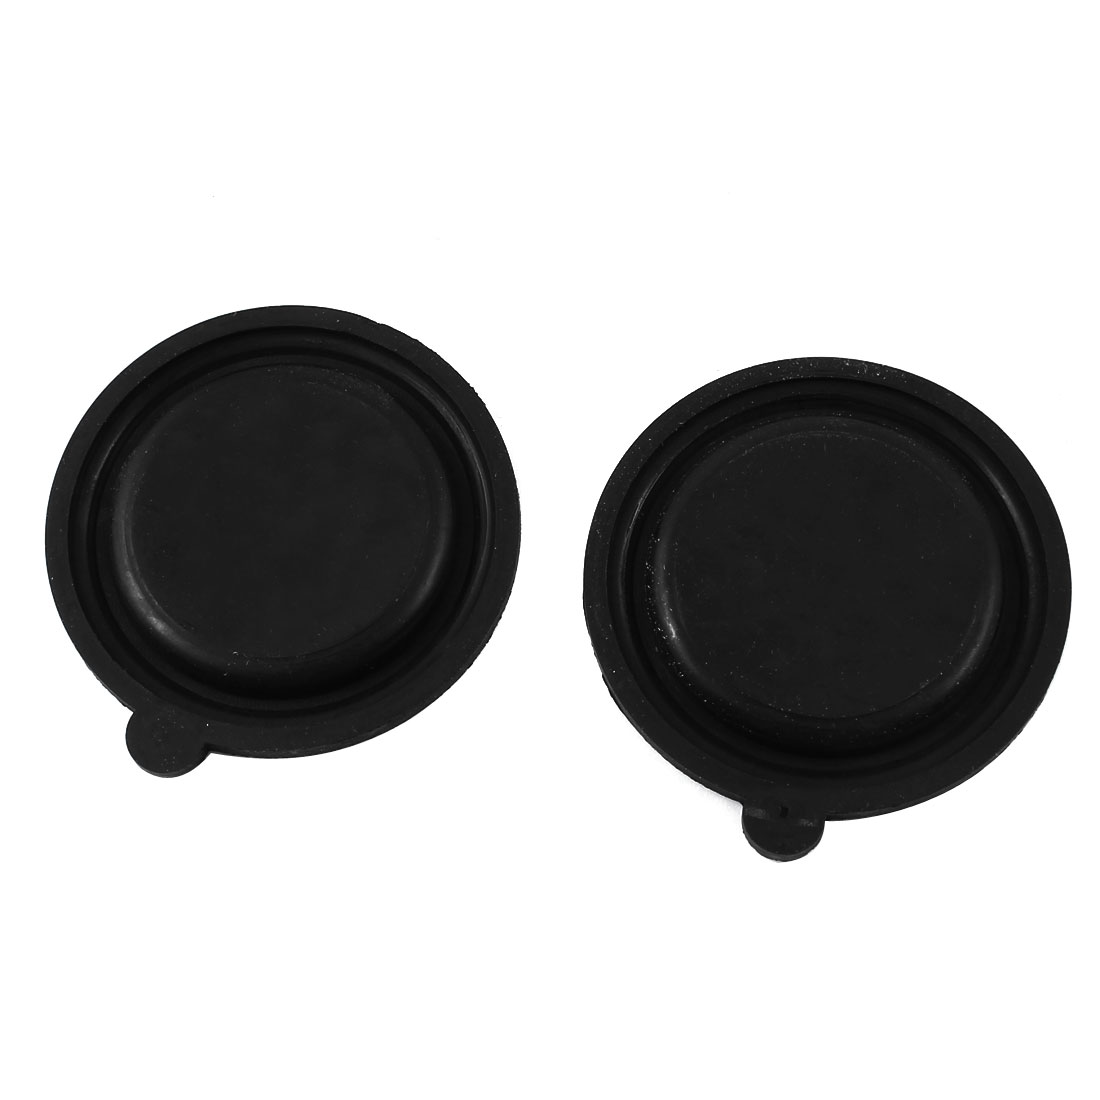 Water Heater Heating Rubber Diaphragms Seal Gasket 55mm Dia 2 Pcs